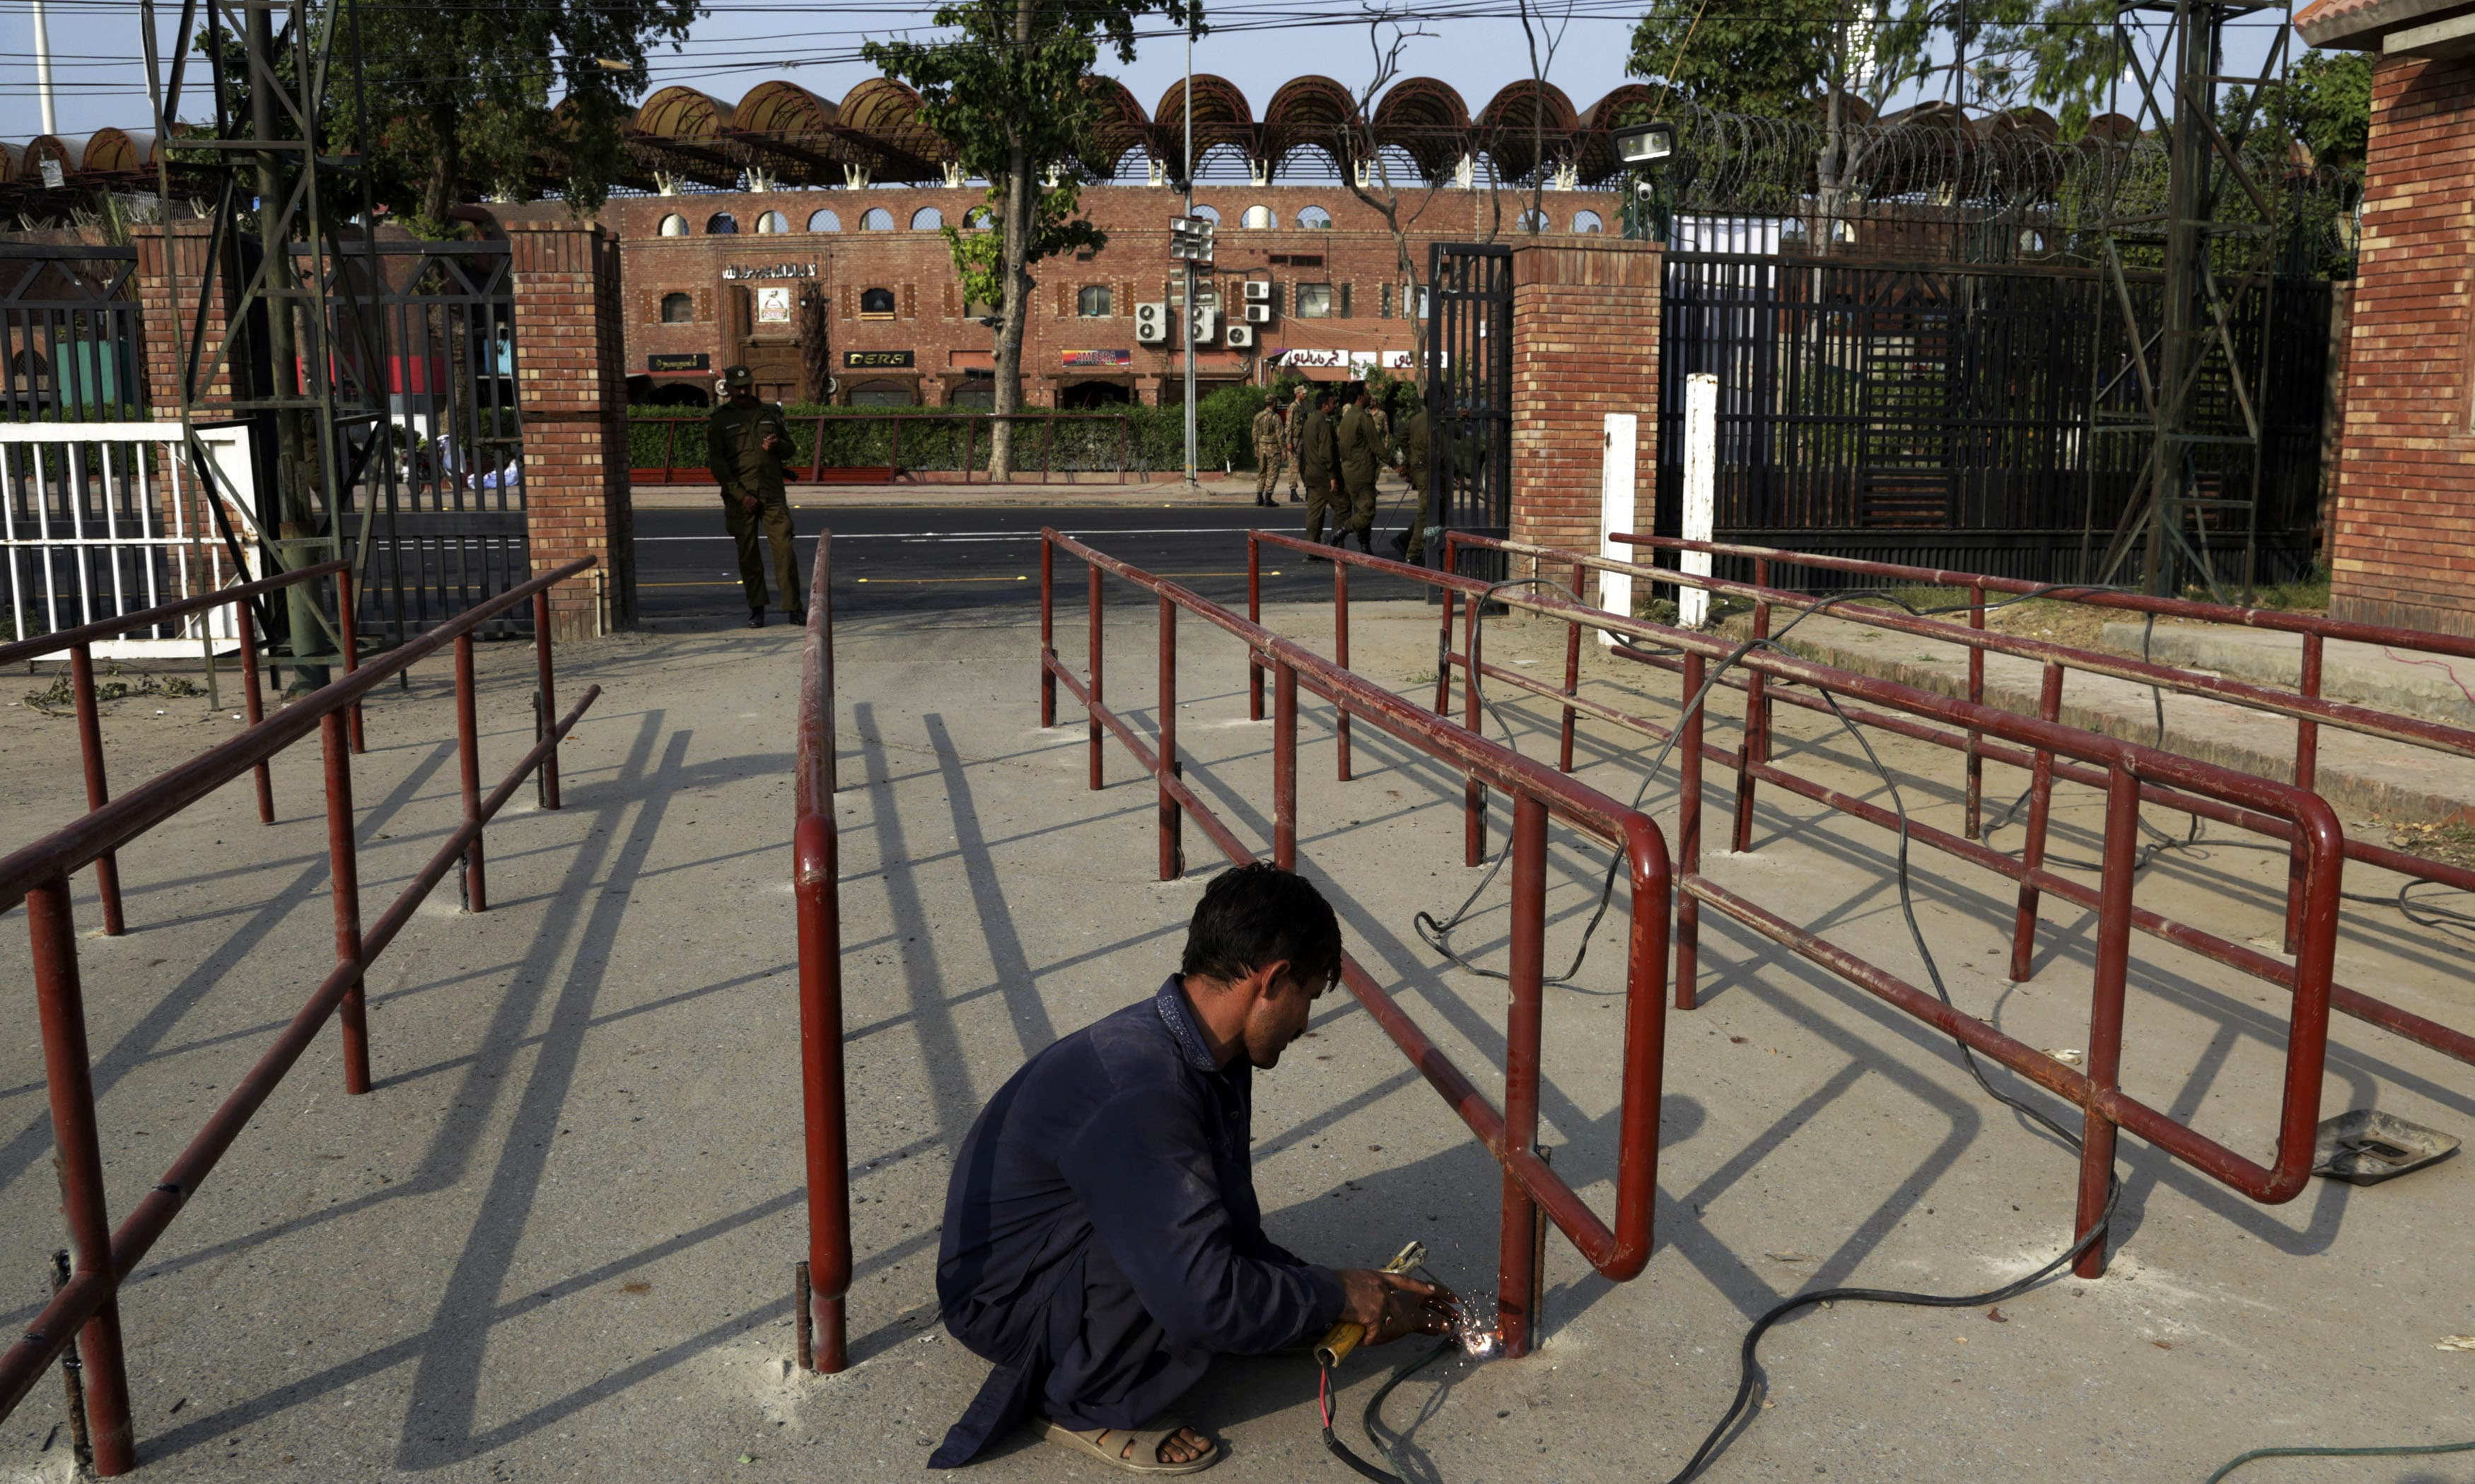 A worker welds a barrier at an entrance to the  Gaddafi stadium, in preparation for the World XI series in Pakistan. —AP